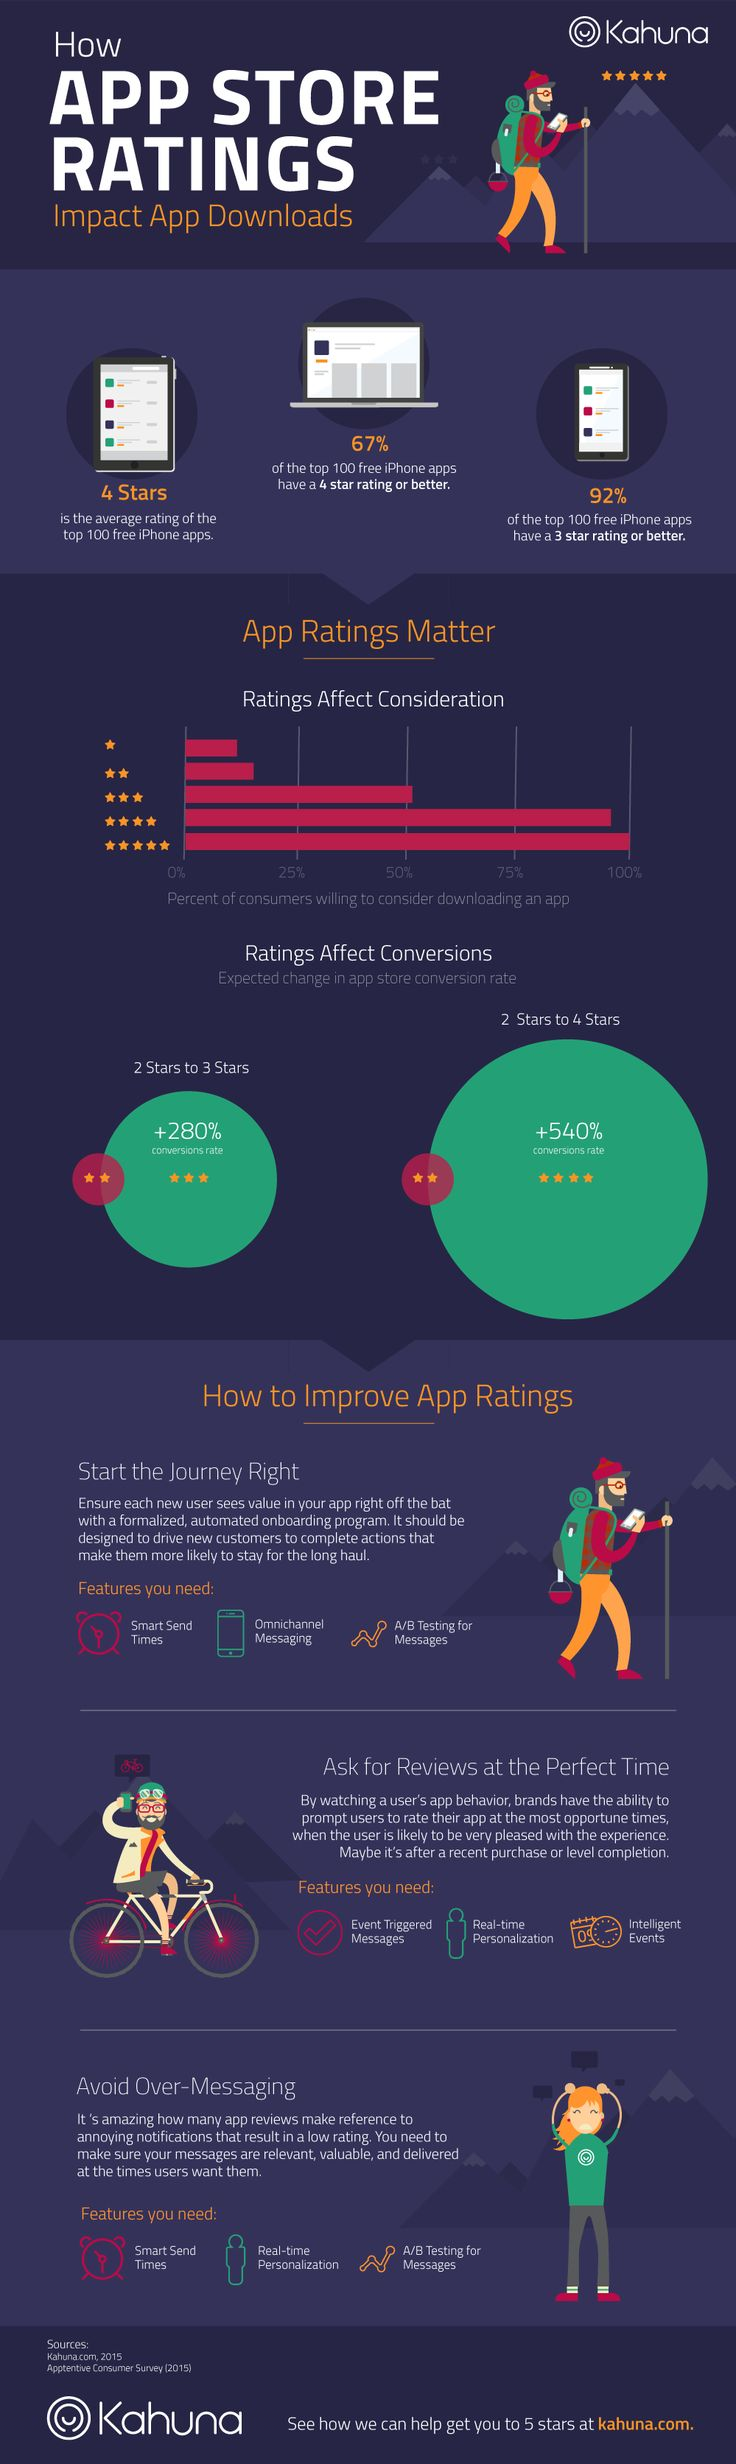 How App Store Ratings Impact Downloads #Infographic #Apps